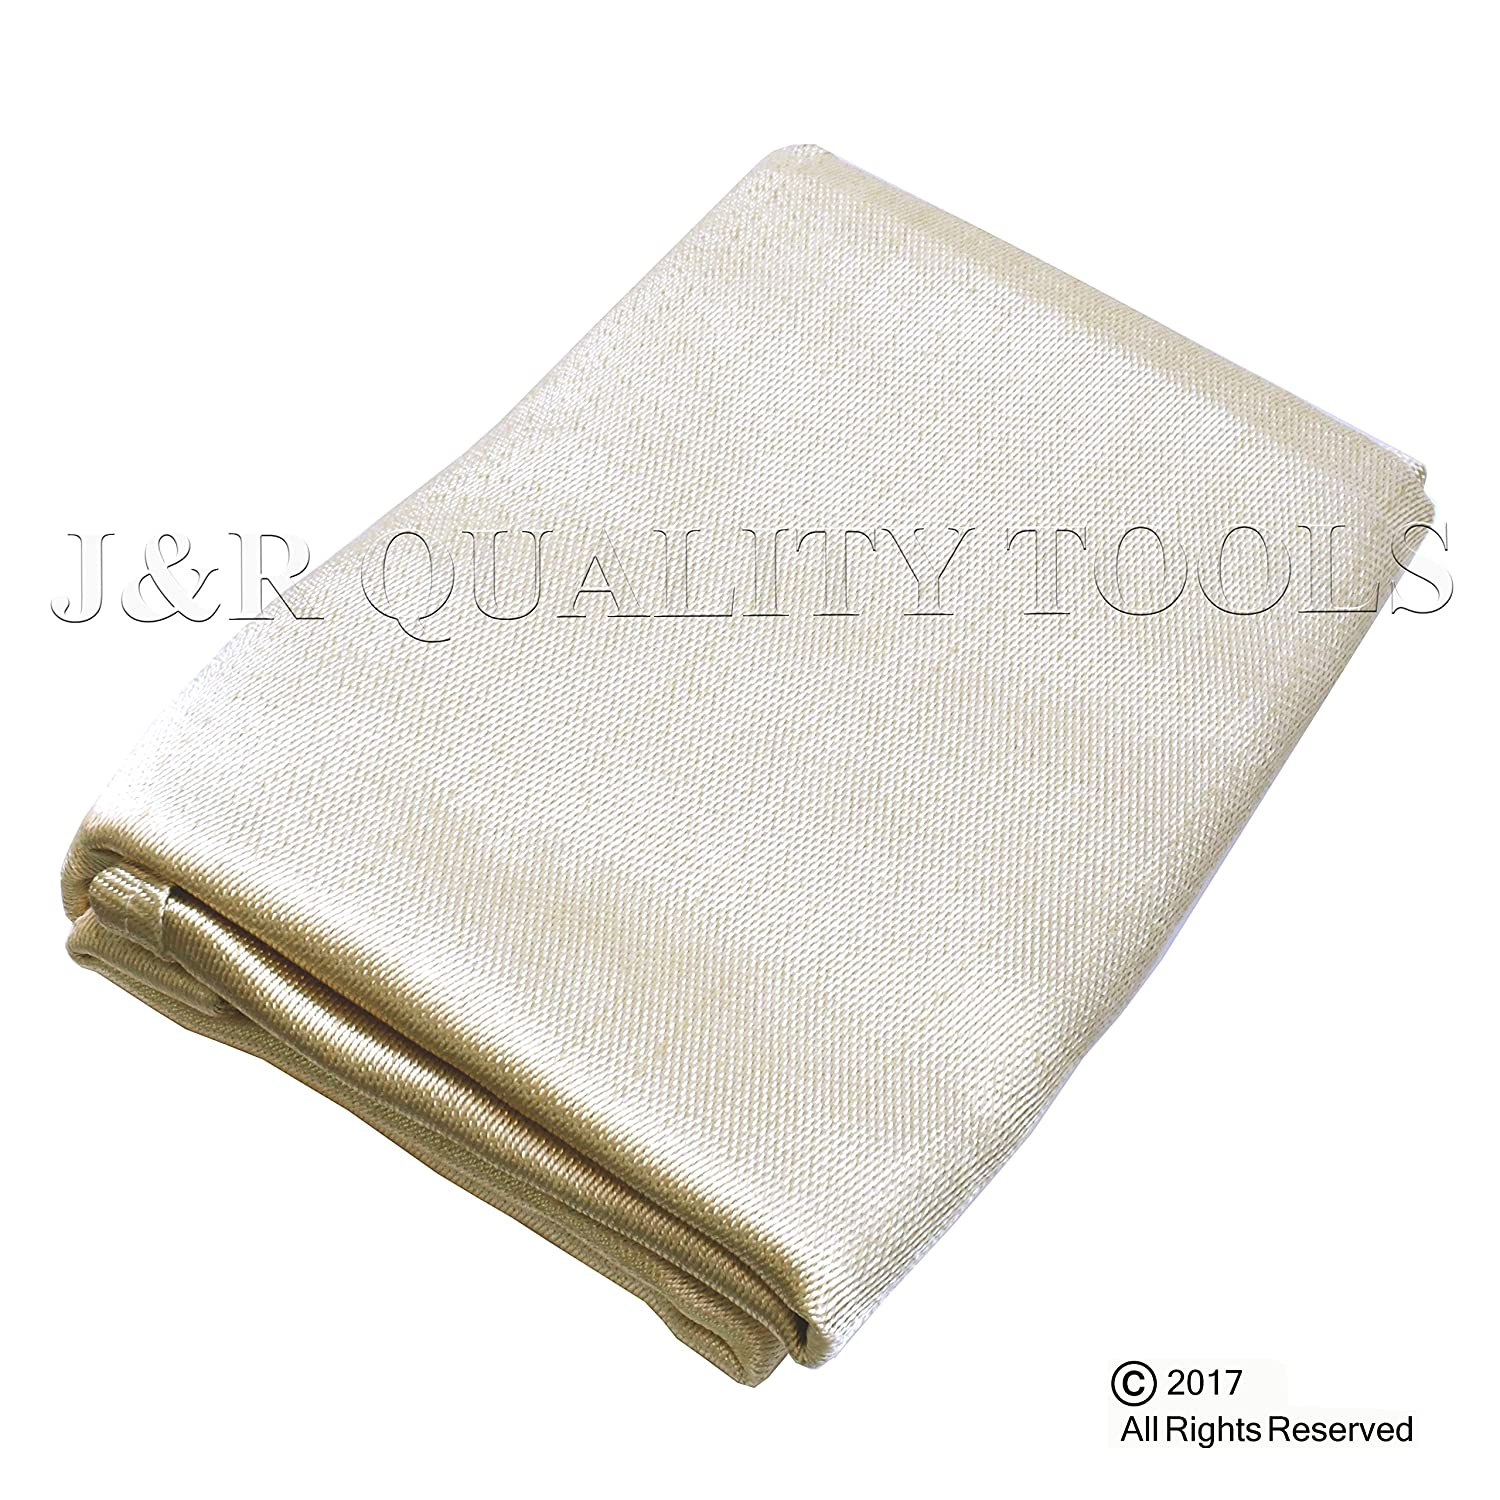 VCT Heavy Duty Fiberglass Welding Blanket and Cover with Brass Grommets Size 4 FT. x 6 FT. J&R Quality Tools